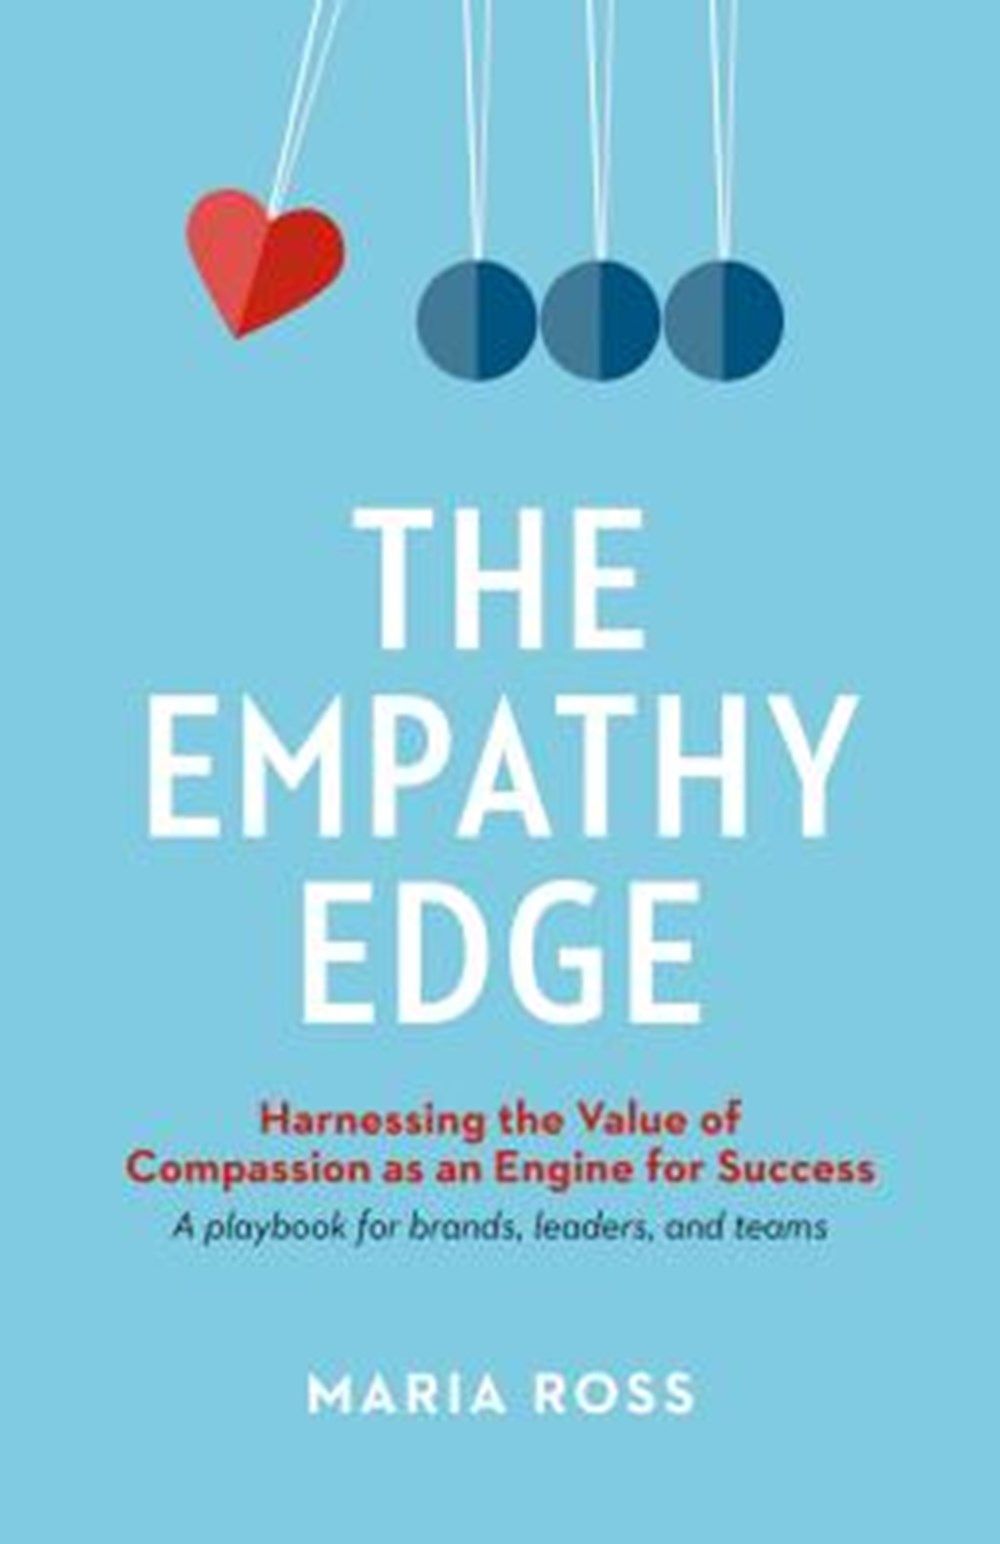 Empathy Edge Harnessing the Value of Compassion as an Engine for Success